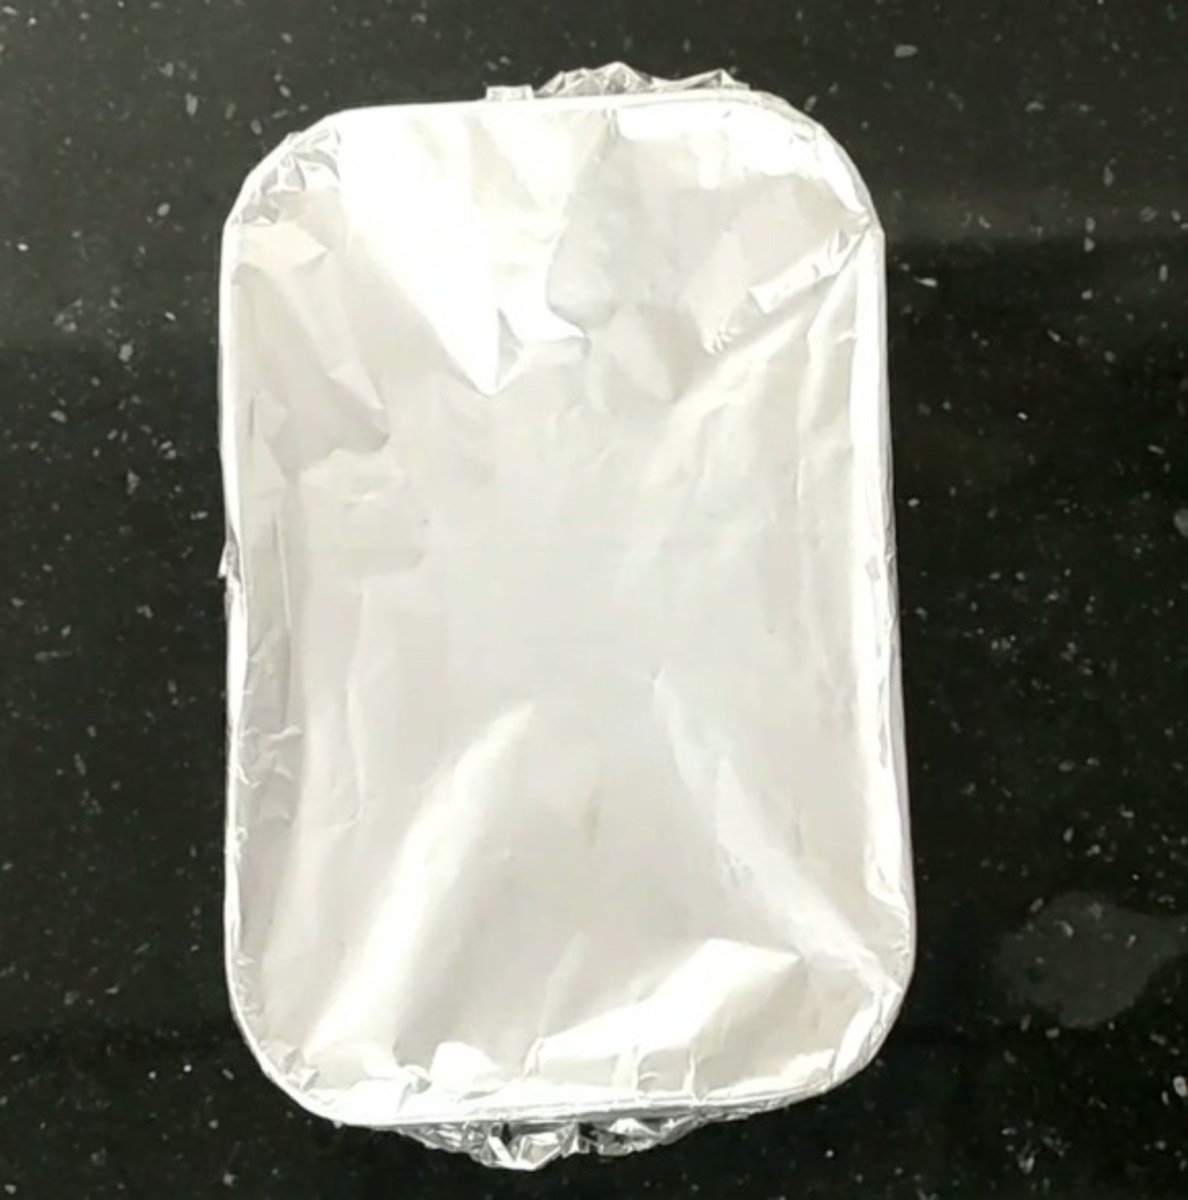 Cover with aluminium foil and refrigerate.